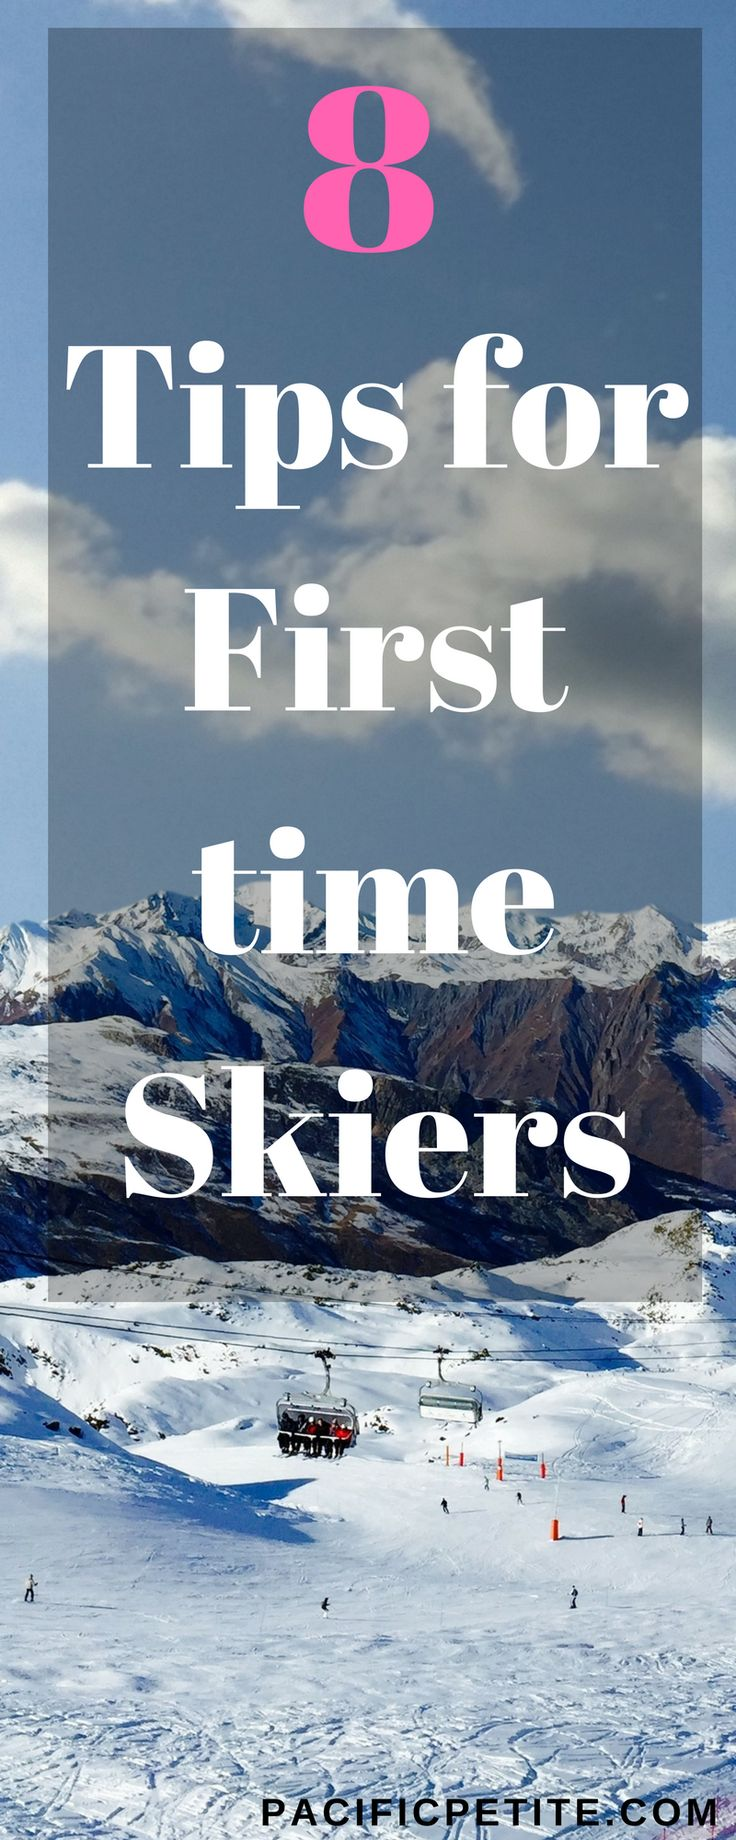 It's winter and ski weather! If it's your first time on the slopes, no worries! Here are 8 must know tips for first time skiers